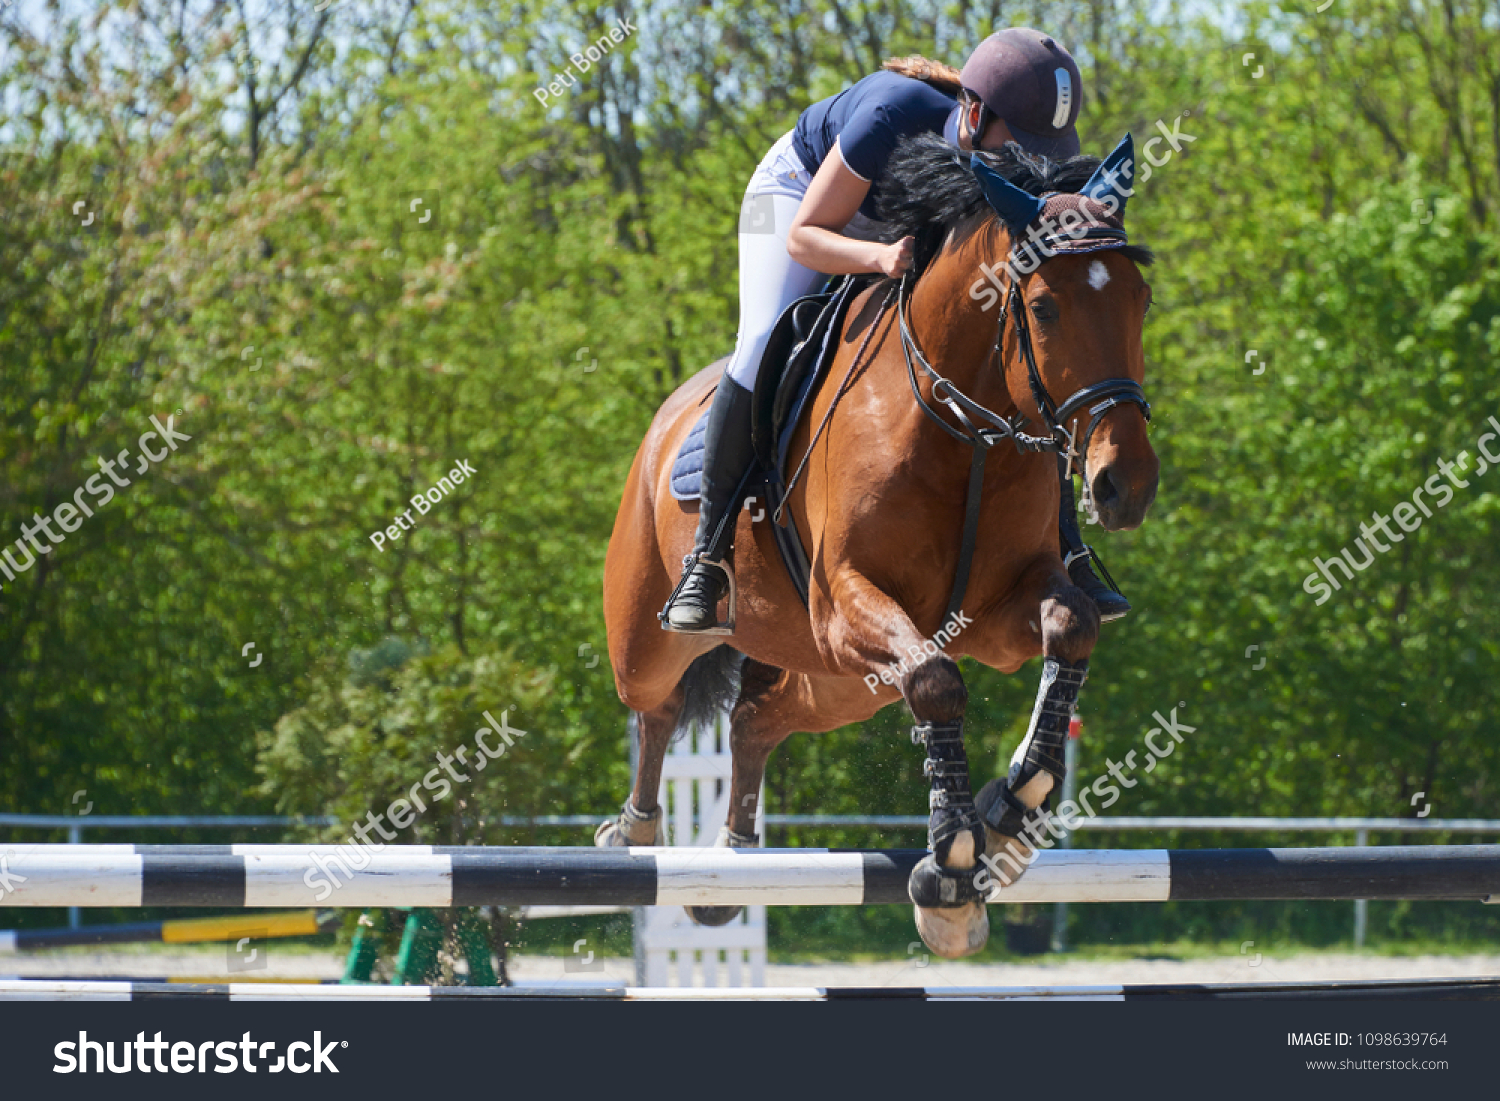 Equestrian Sports Horse Jumping Show Jumping Stock Photo Edit Now 1098639764